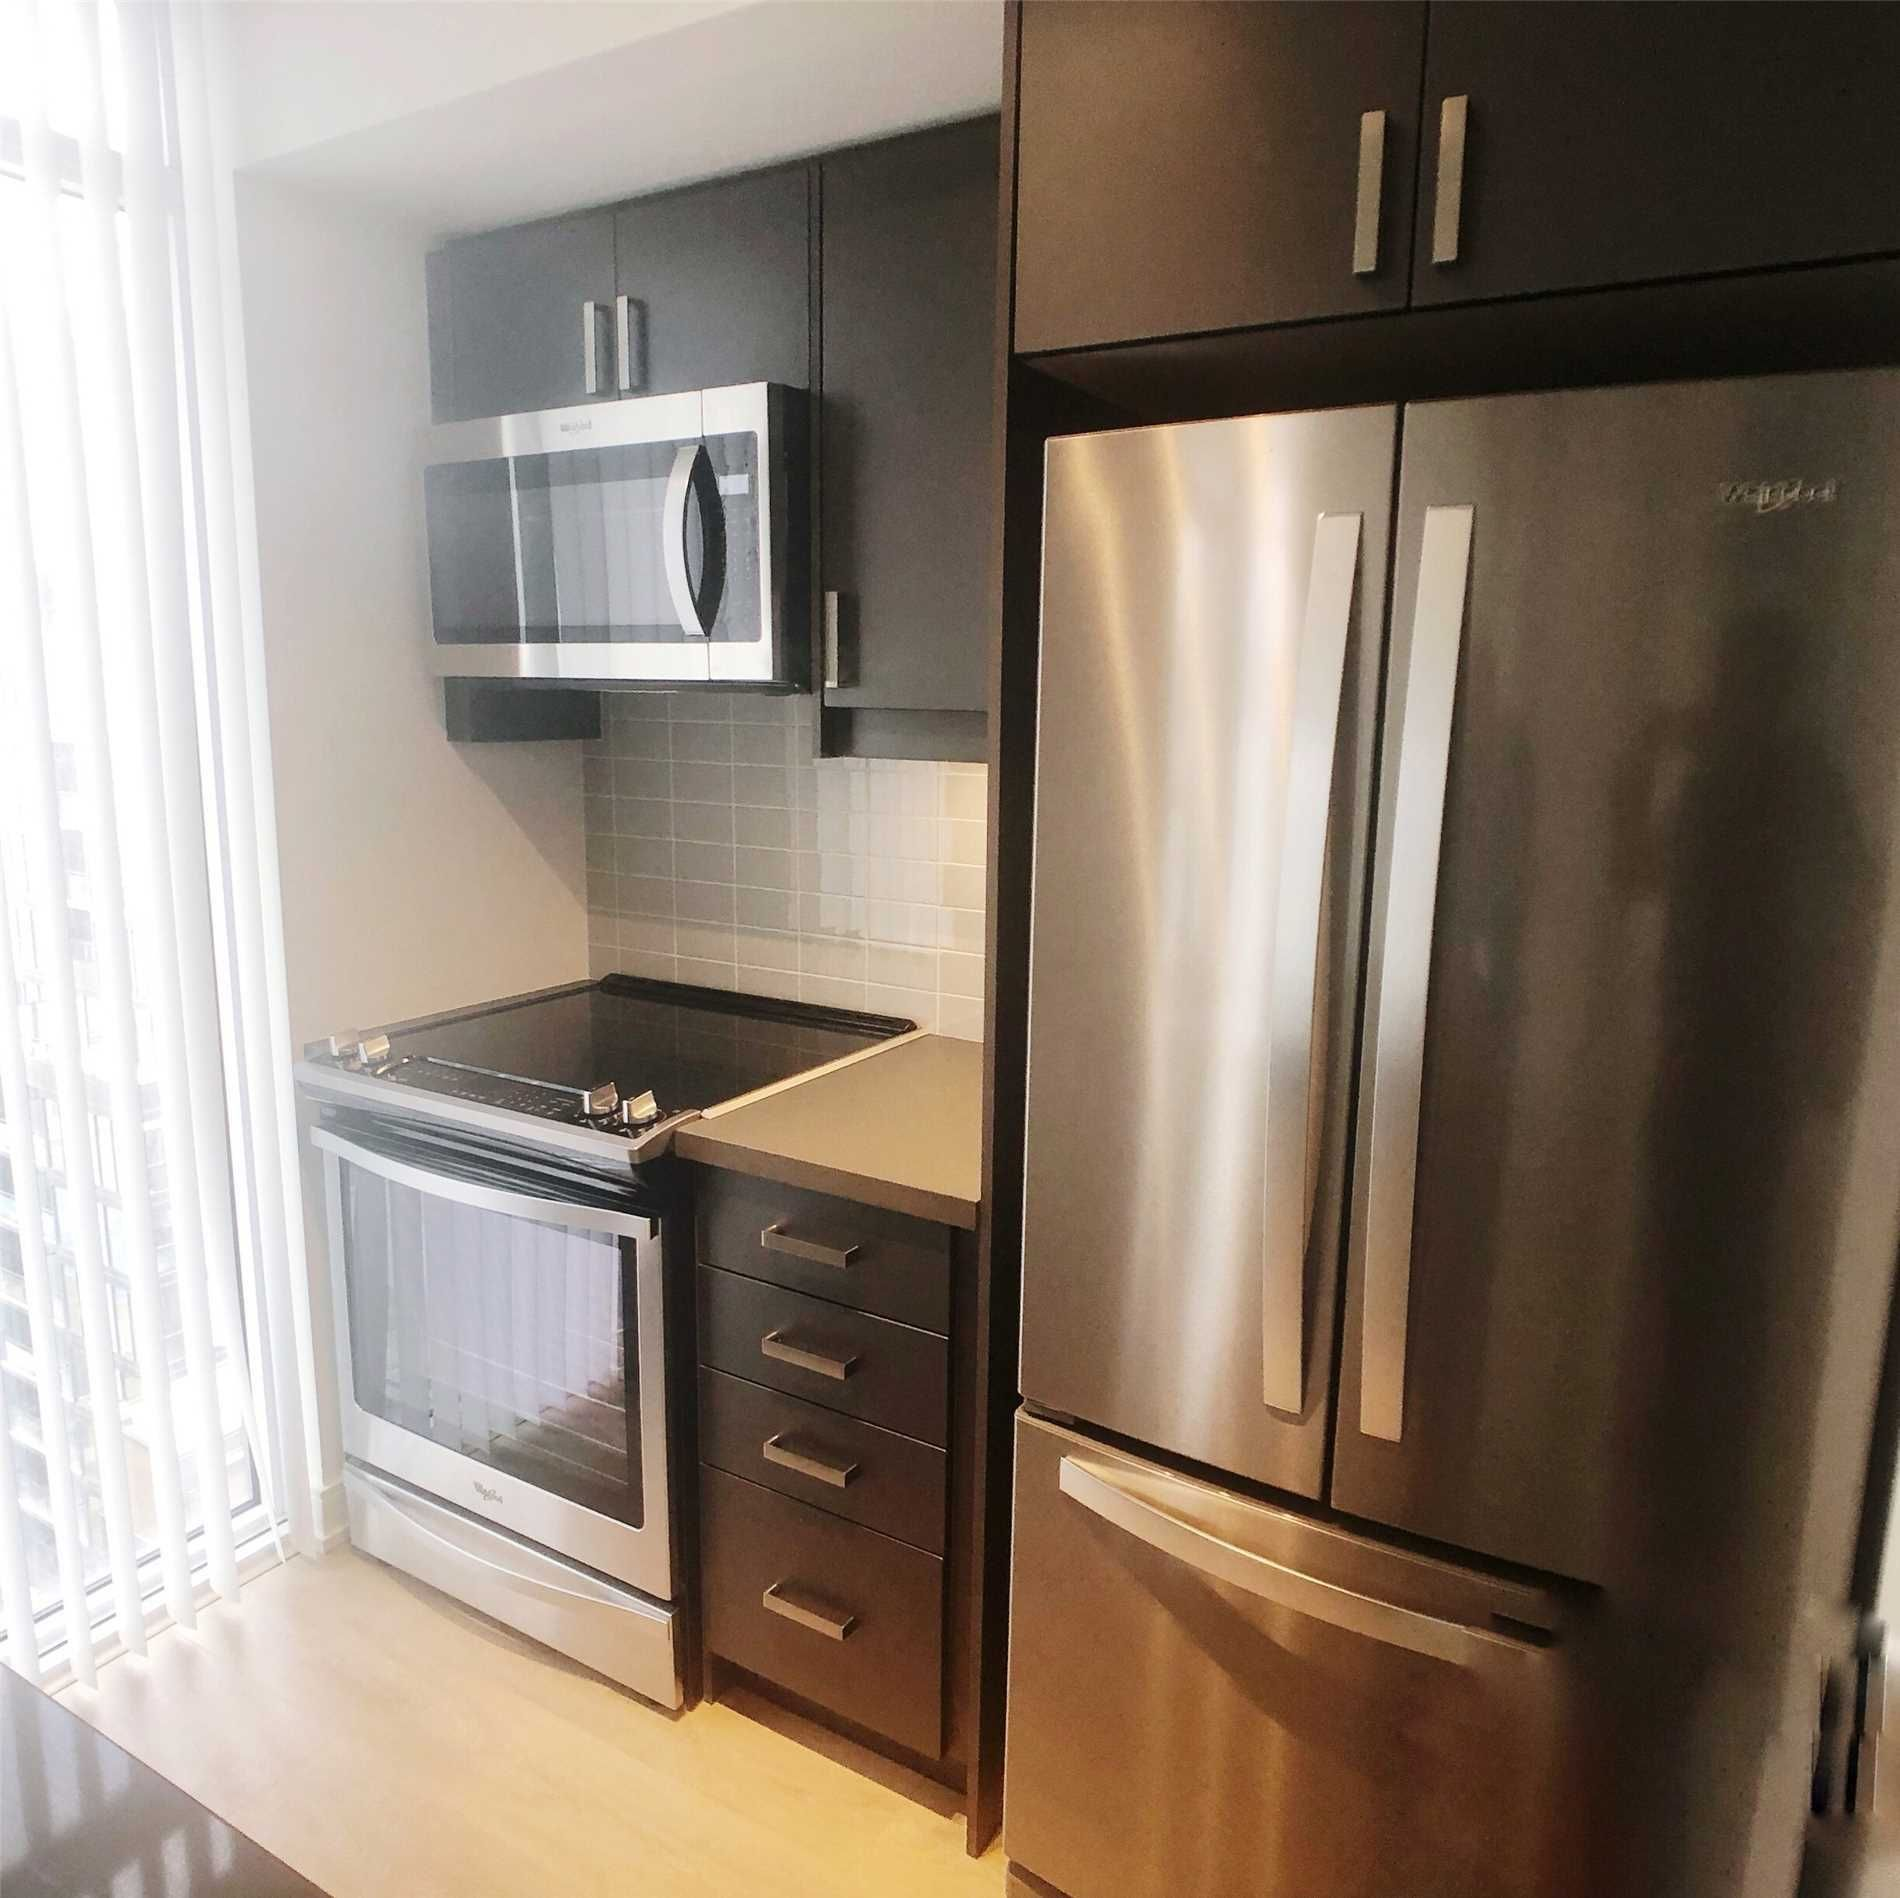 50 Wellesley St E, unit 2001 for rent in Toronto - image #2